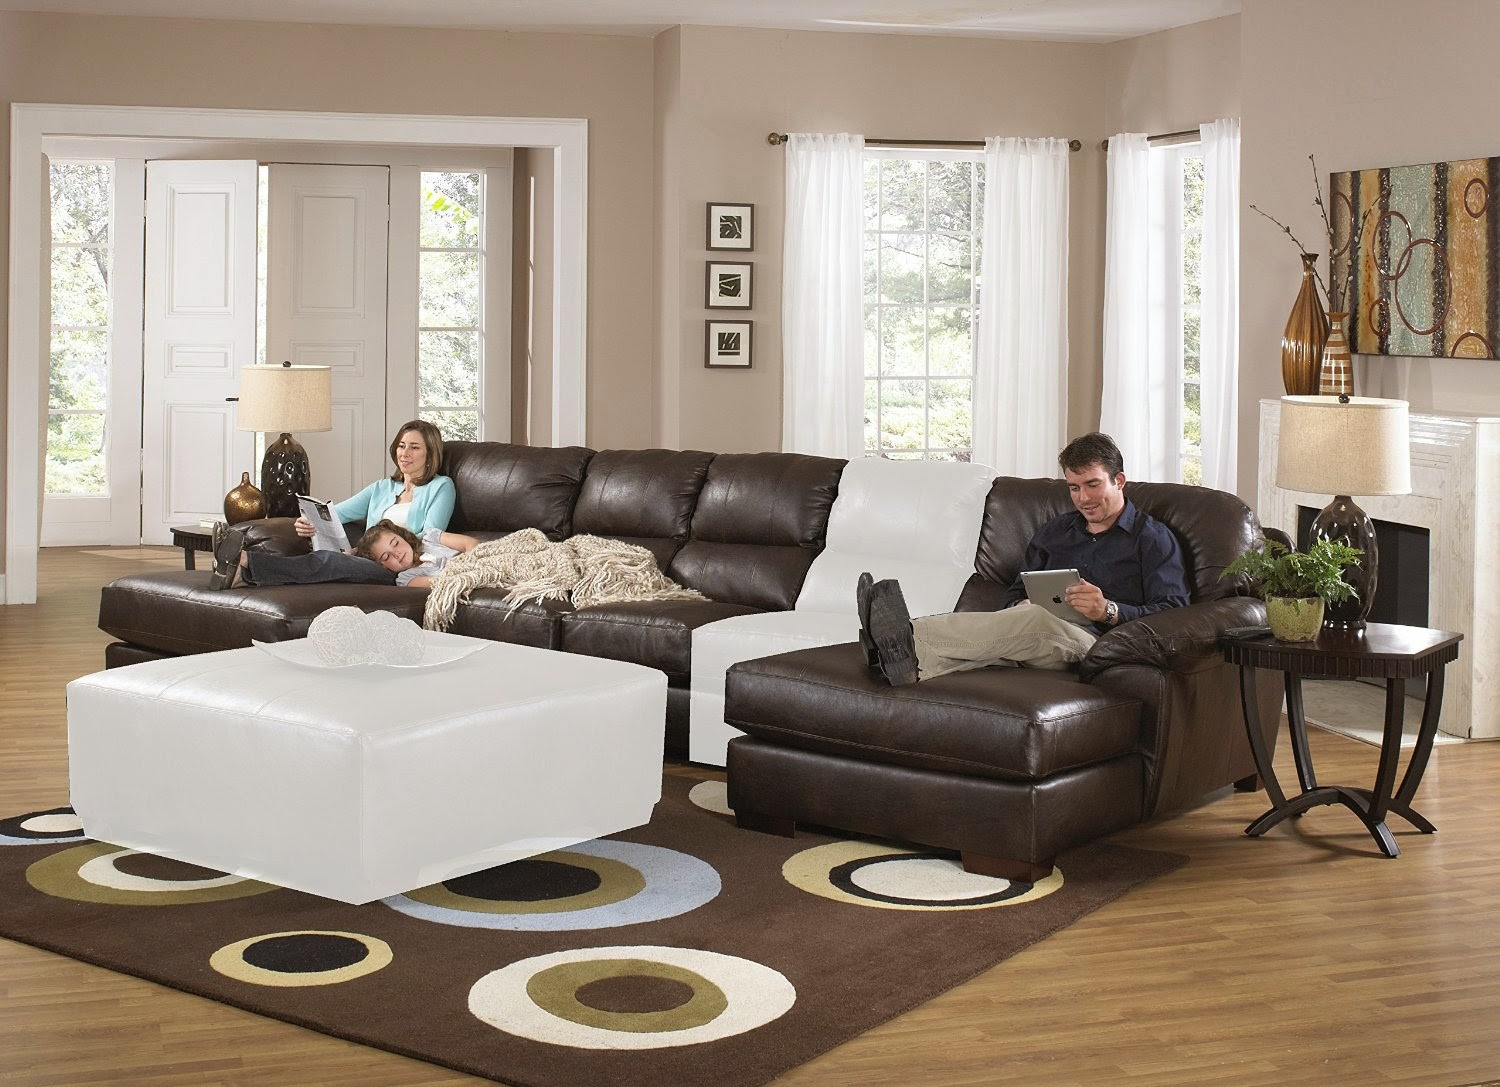 England Sleeper Sectional Sofa u0026 Reclining Loveseat & Cheap Reclining Sofas Sale: England Sleeper Sectional Sofa ... islam-shia.org